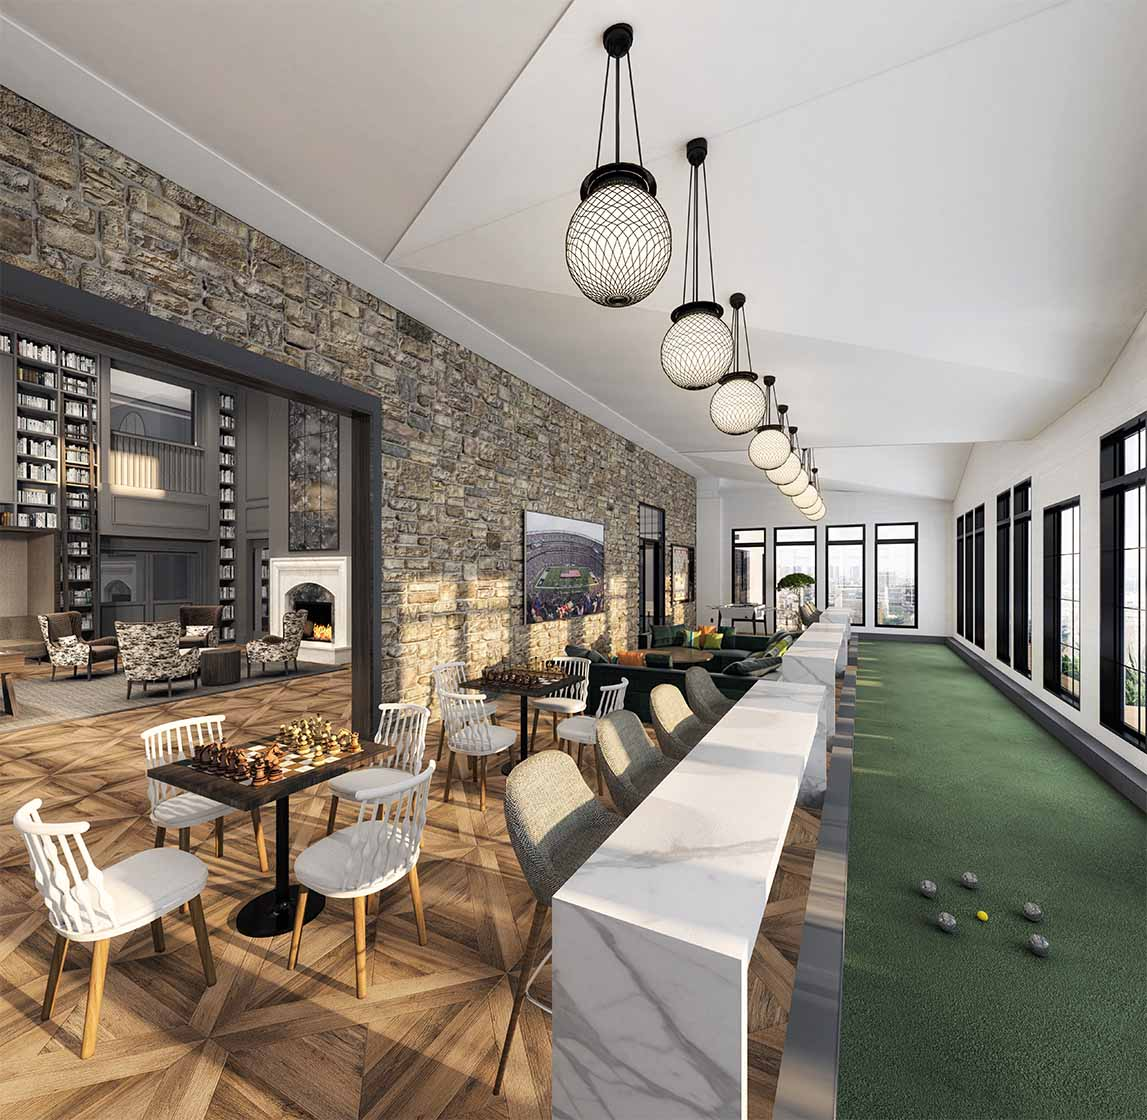 Rendering of greenhouse at Carraway with indoor Bocce Ball, co-working spaces and TV seating areas